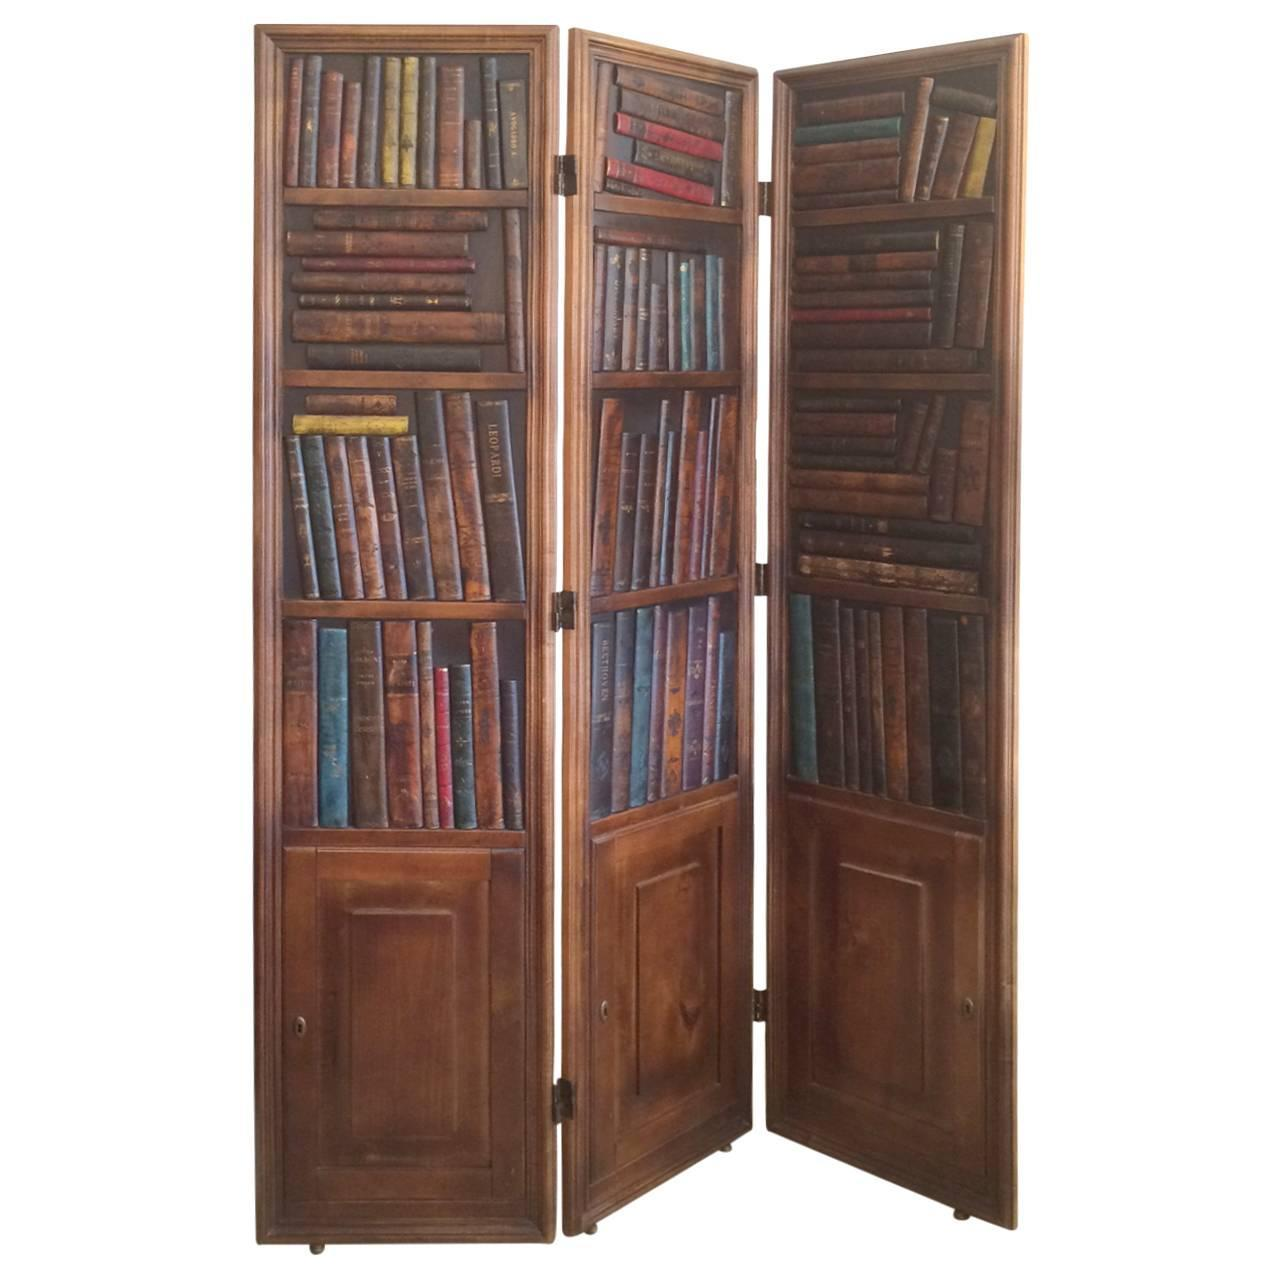 Handsome Mahogany And Leather Book Three Panel Library